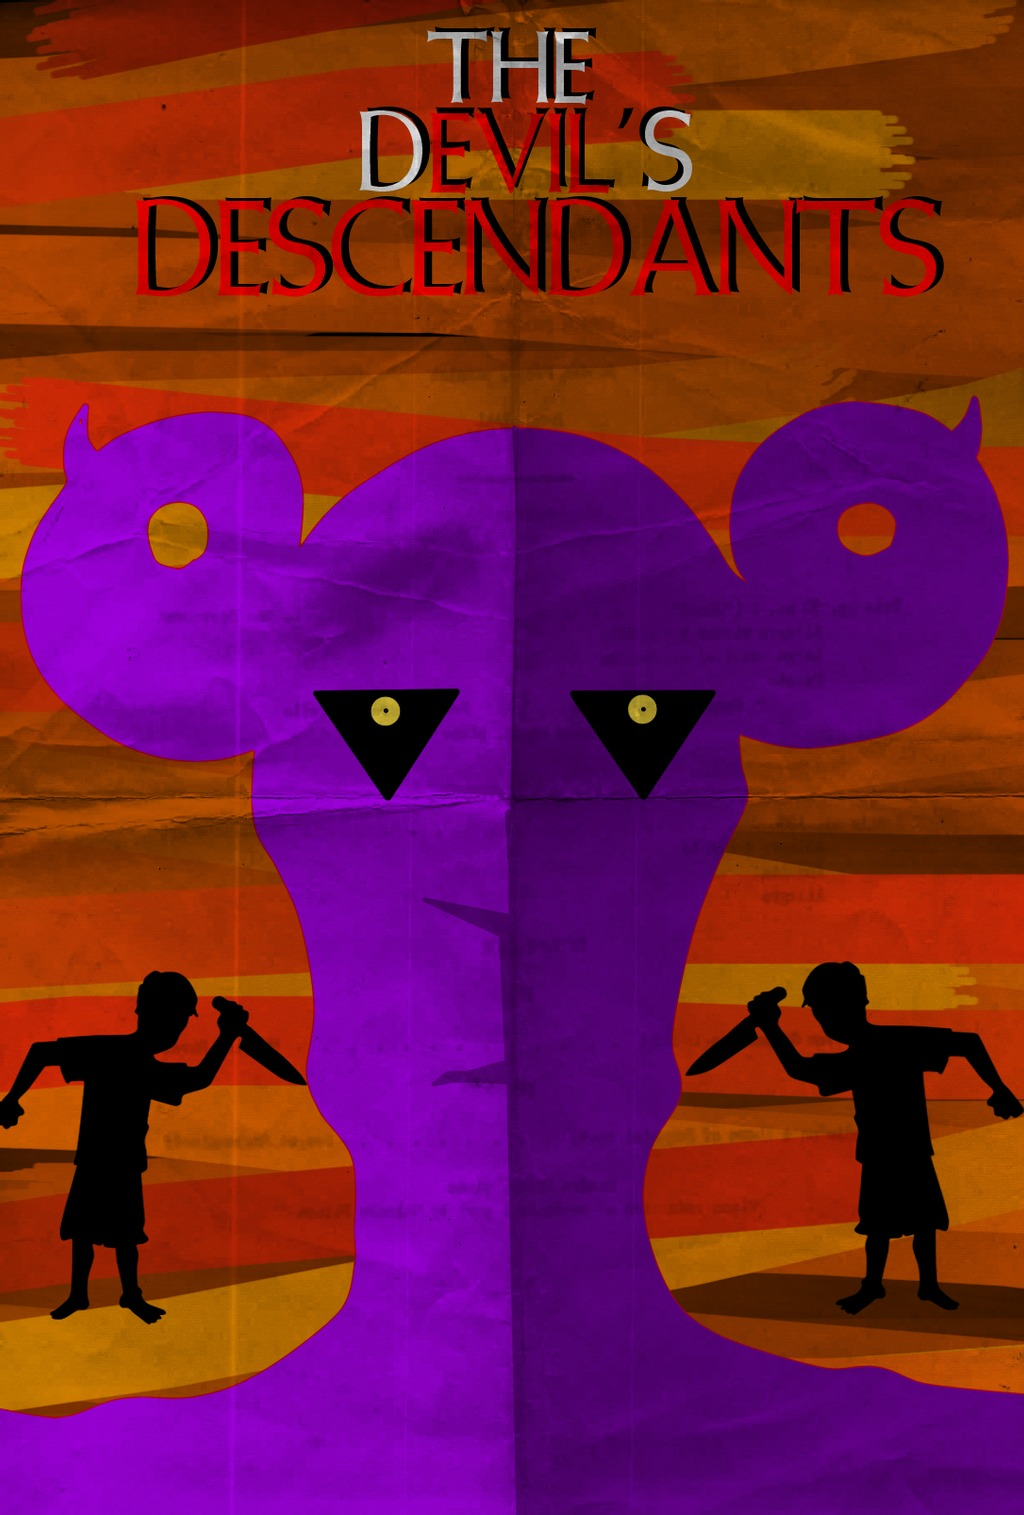 The devil's descendants